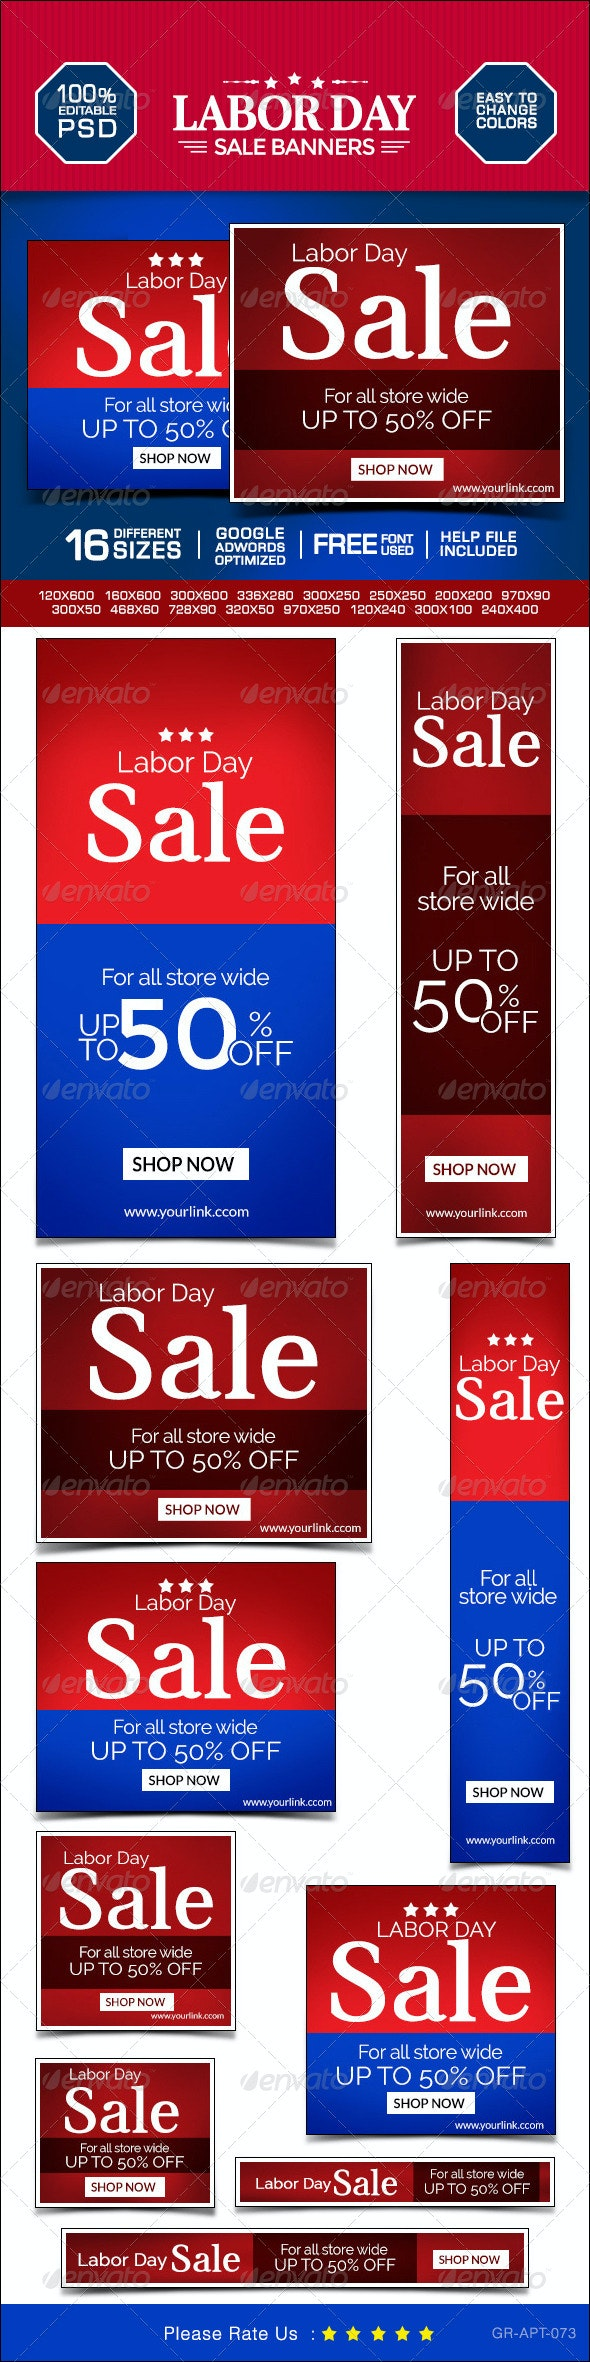 Labor Day Marketing Banners - Banners & Ads Web Elements